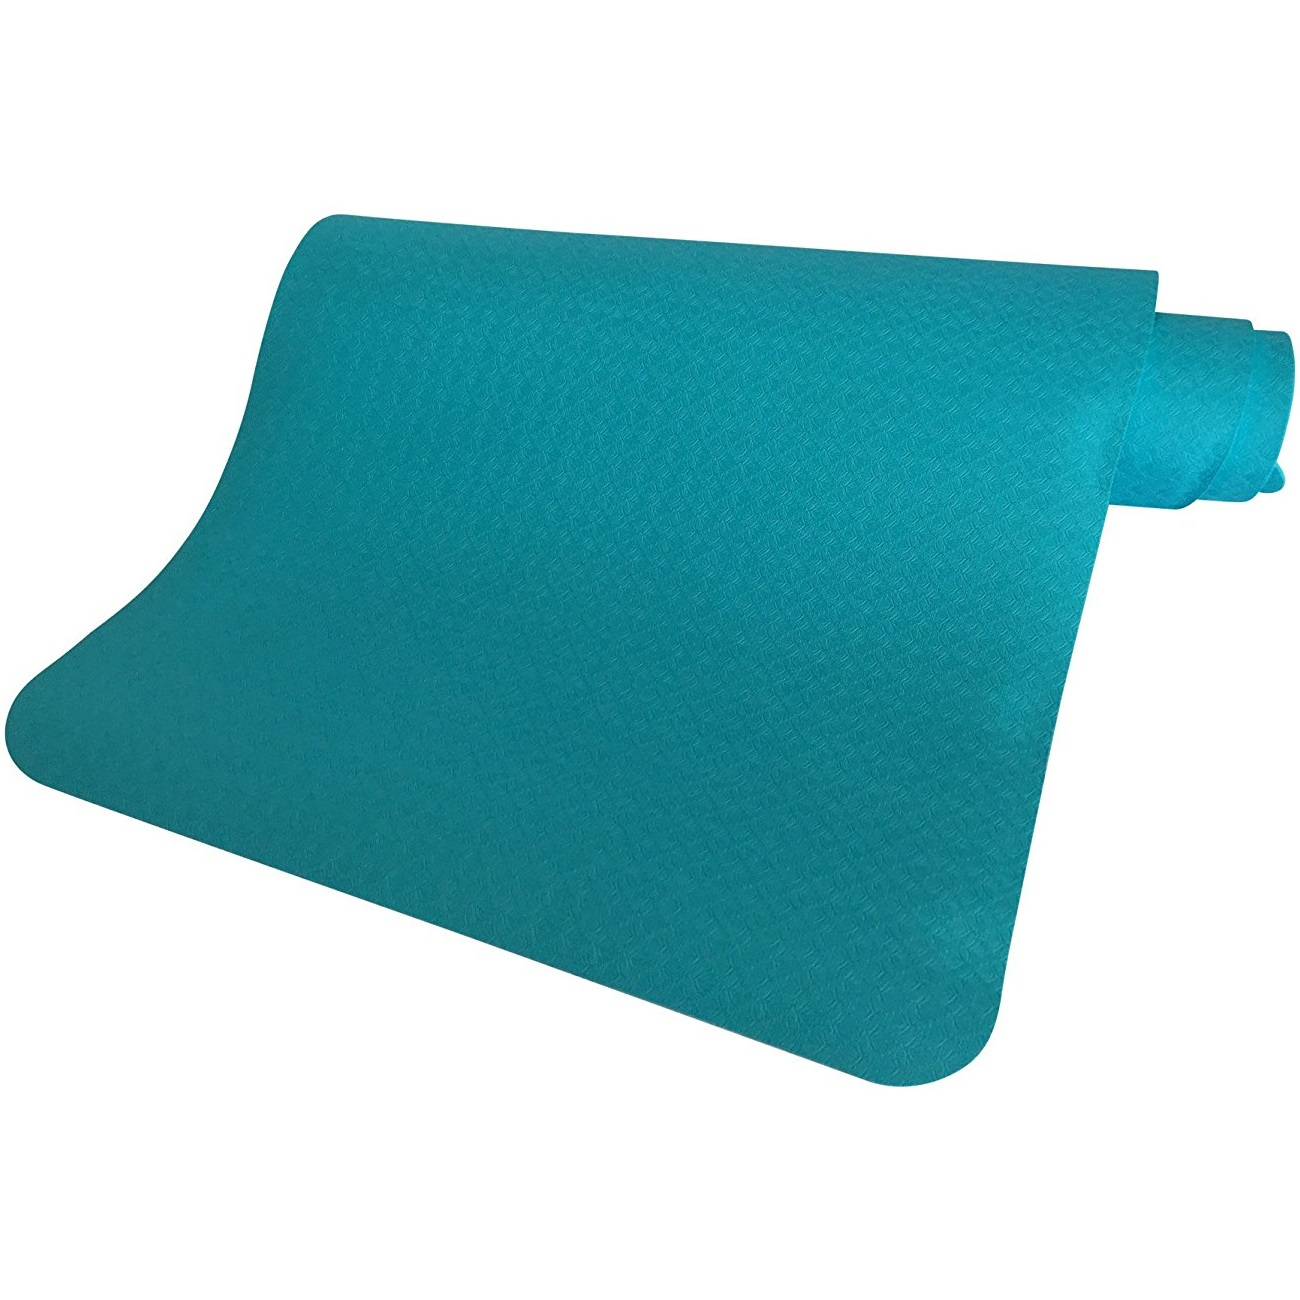 "clever yoga premium bettergrip tpe 1/4"" thick light blue yoga mat"